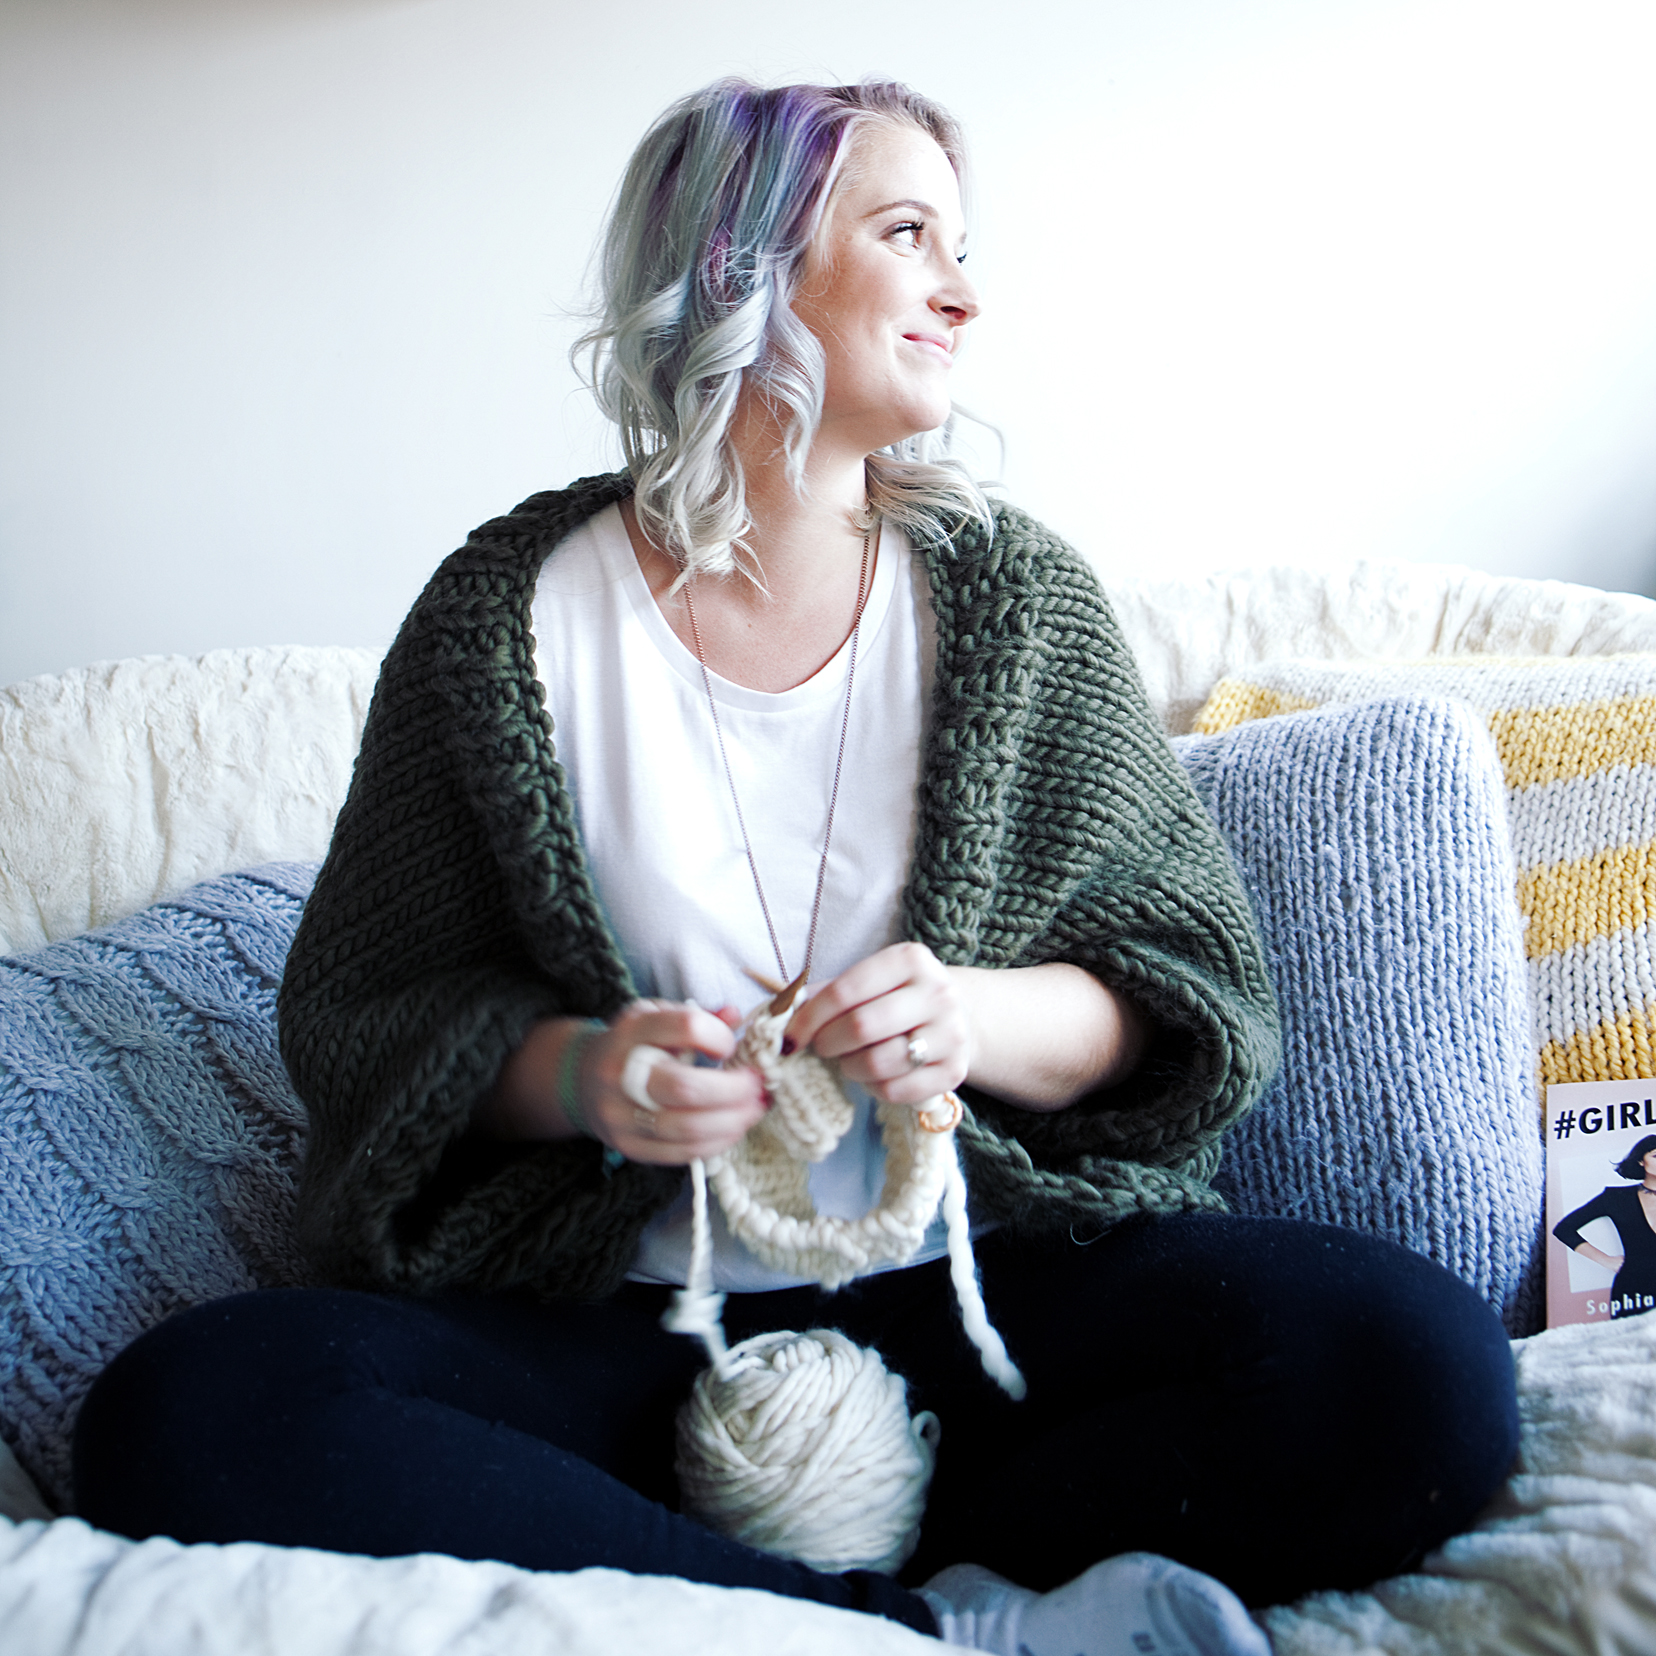 makers-in-the-raw-knitatude-68707w